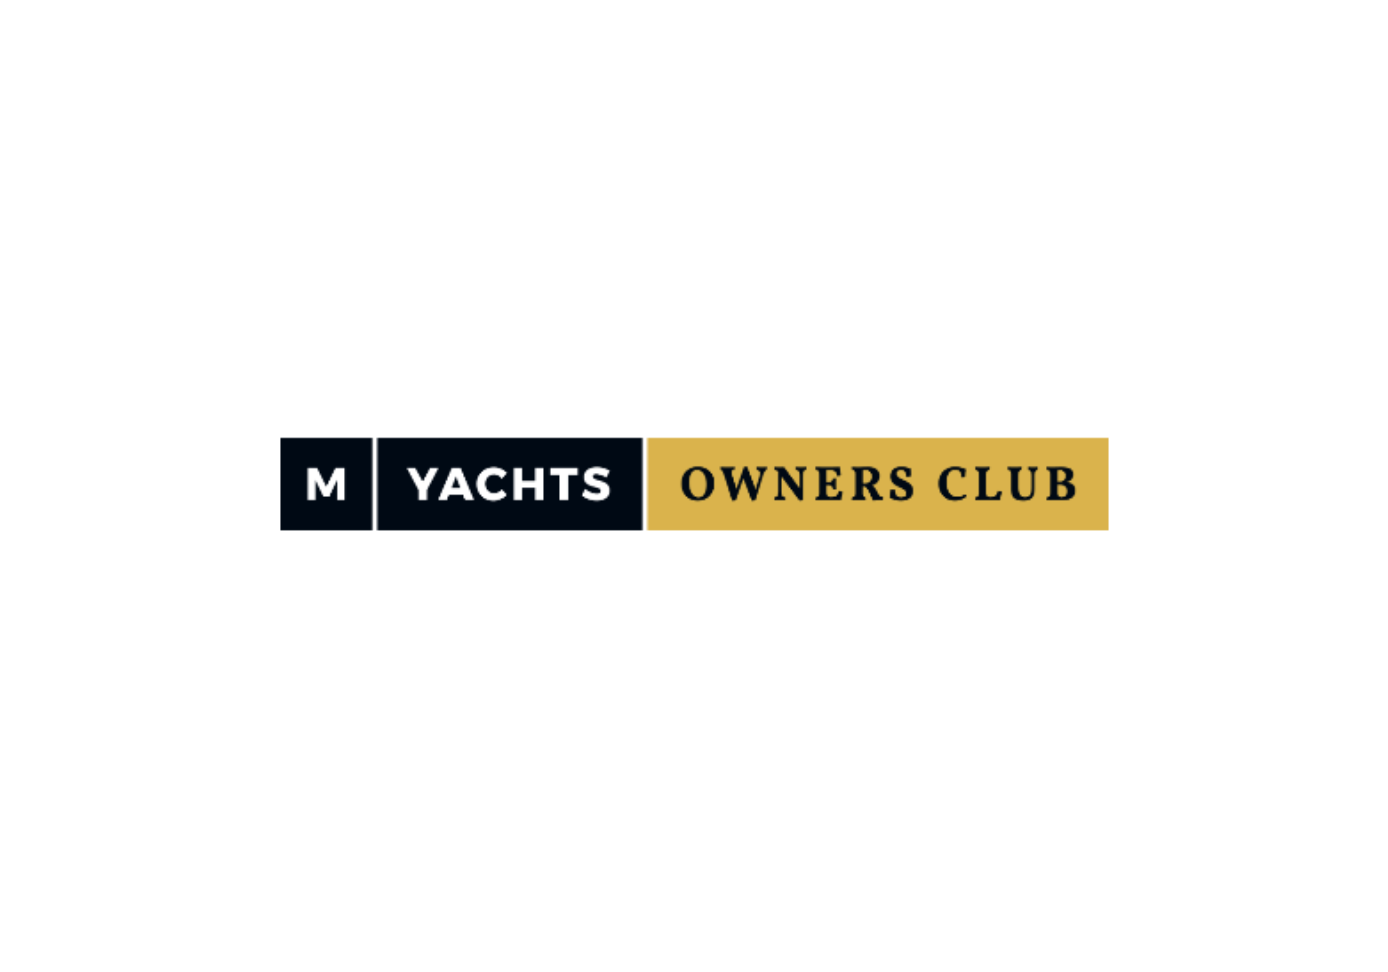 M Yachts Owners Club